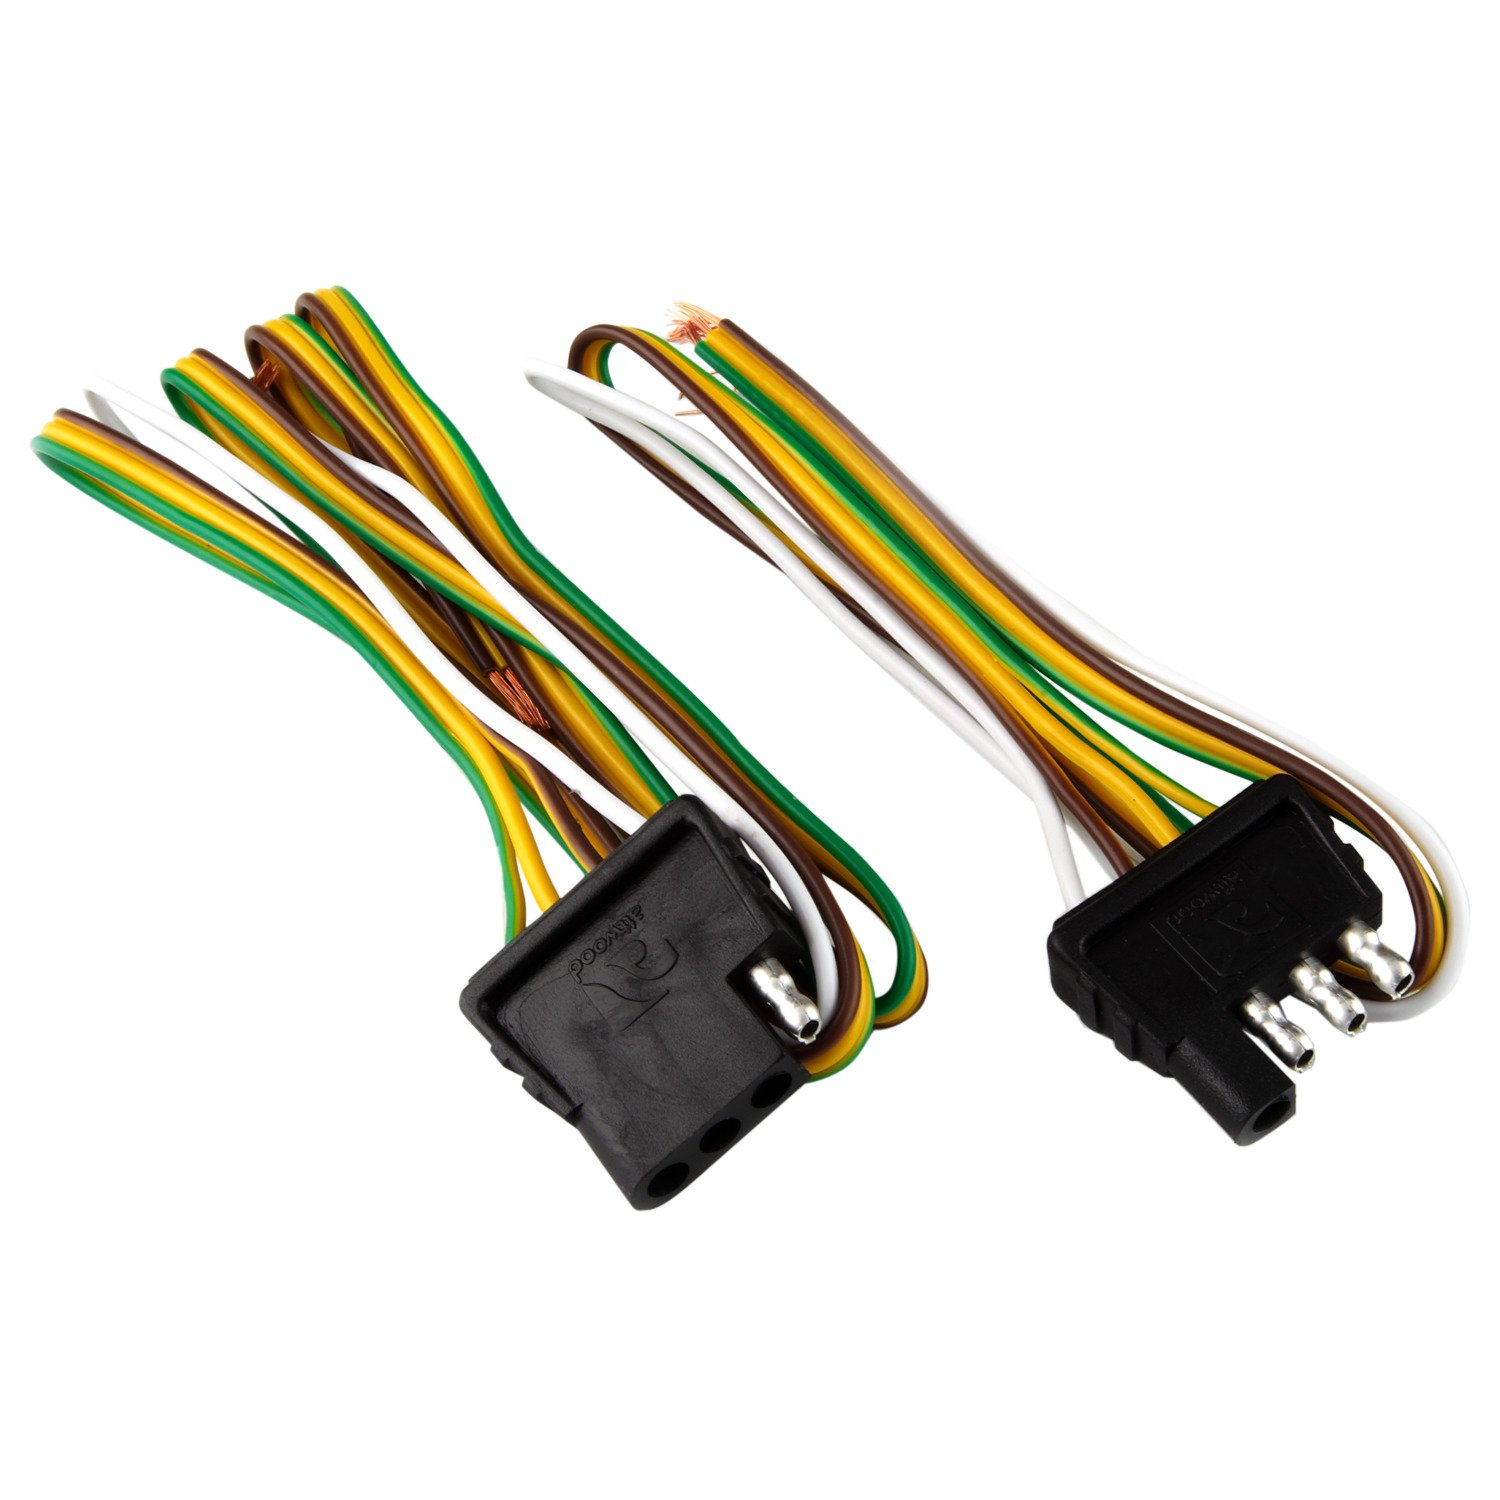 attwood 4 way flat wiring harness kit for vehicles and trailers rh academy com 4 pole flat plug trailer wiring harness